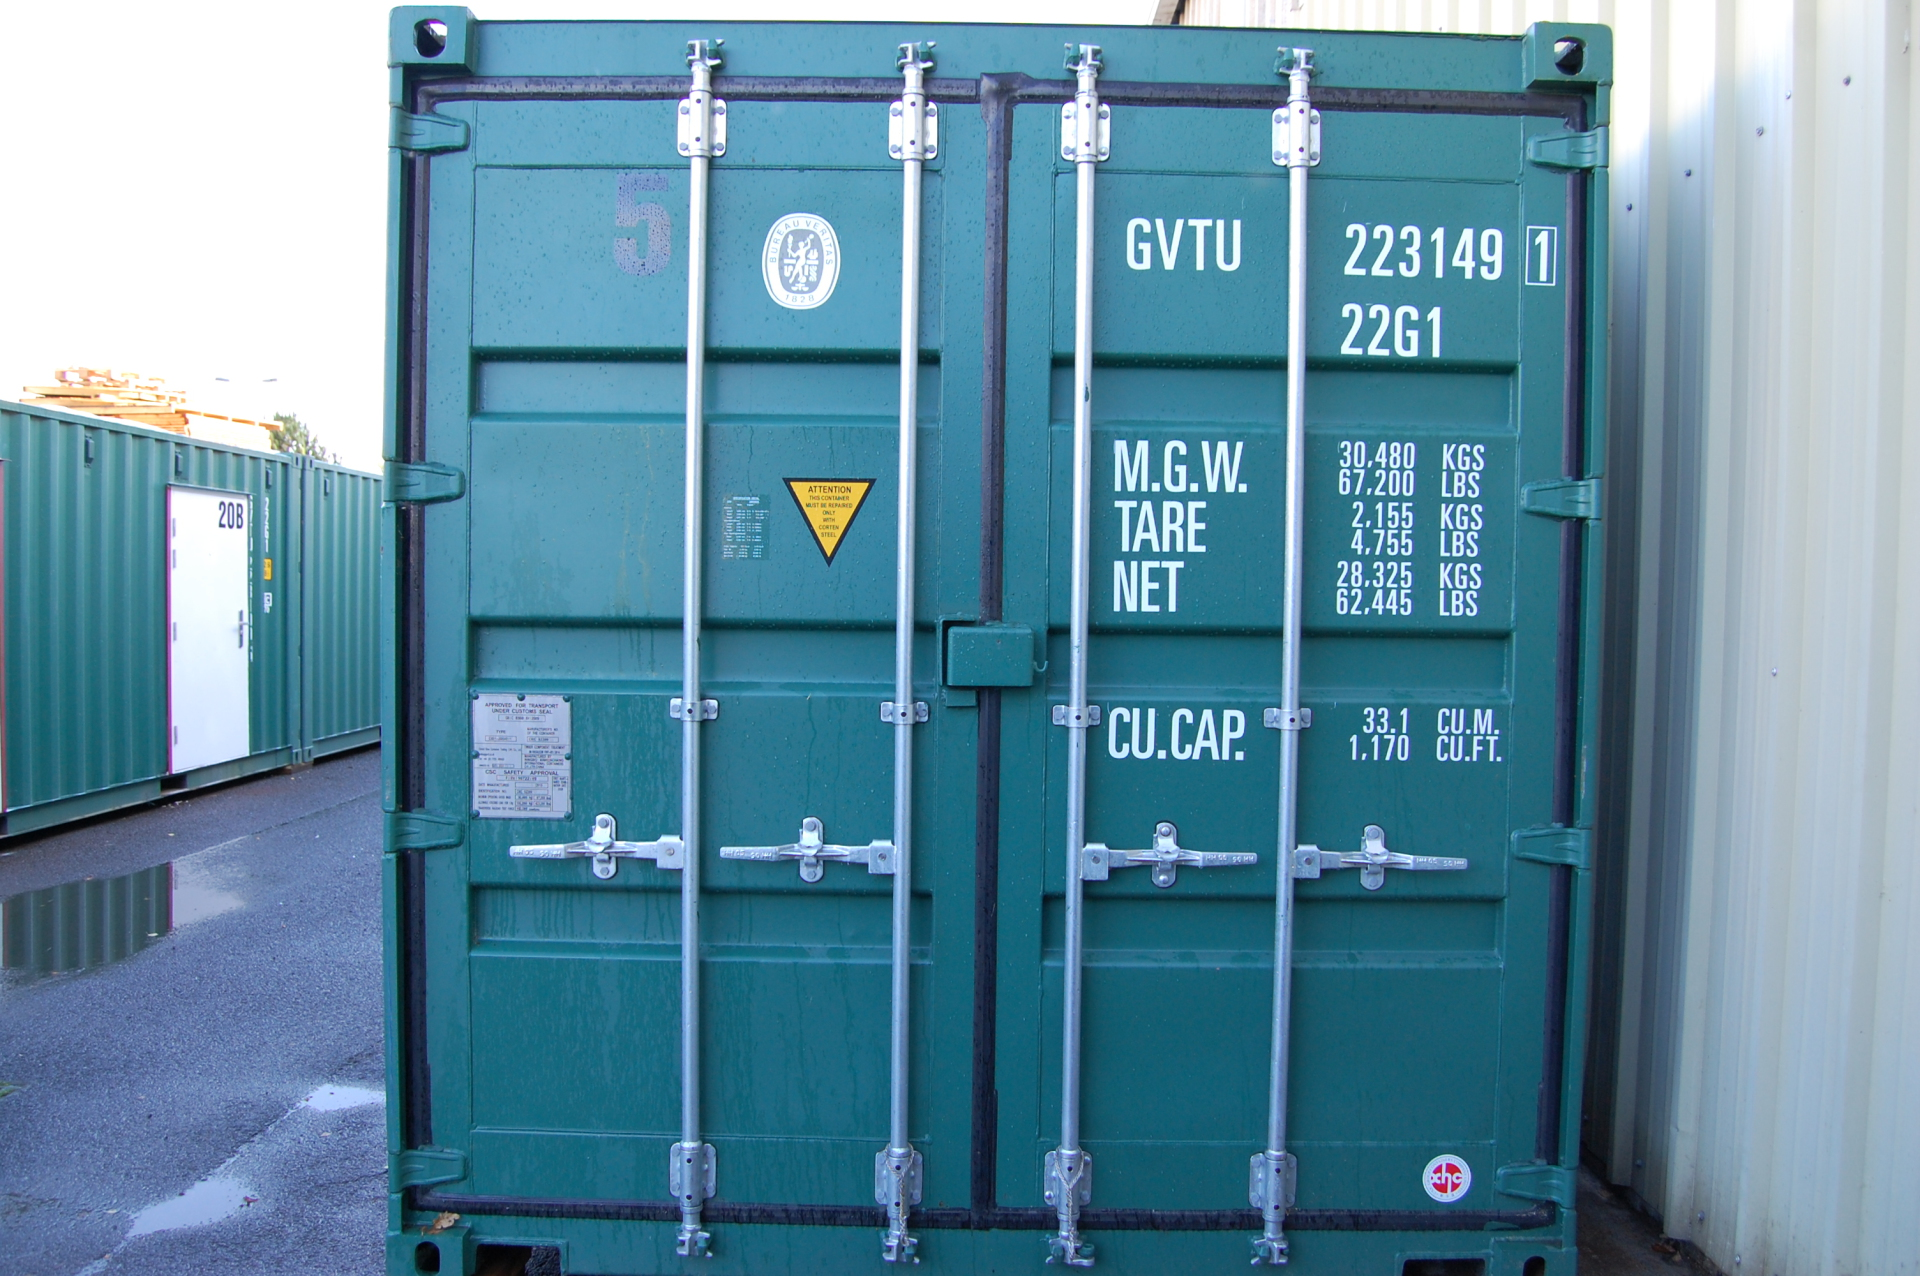 Unit container doors